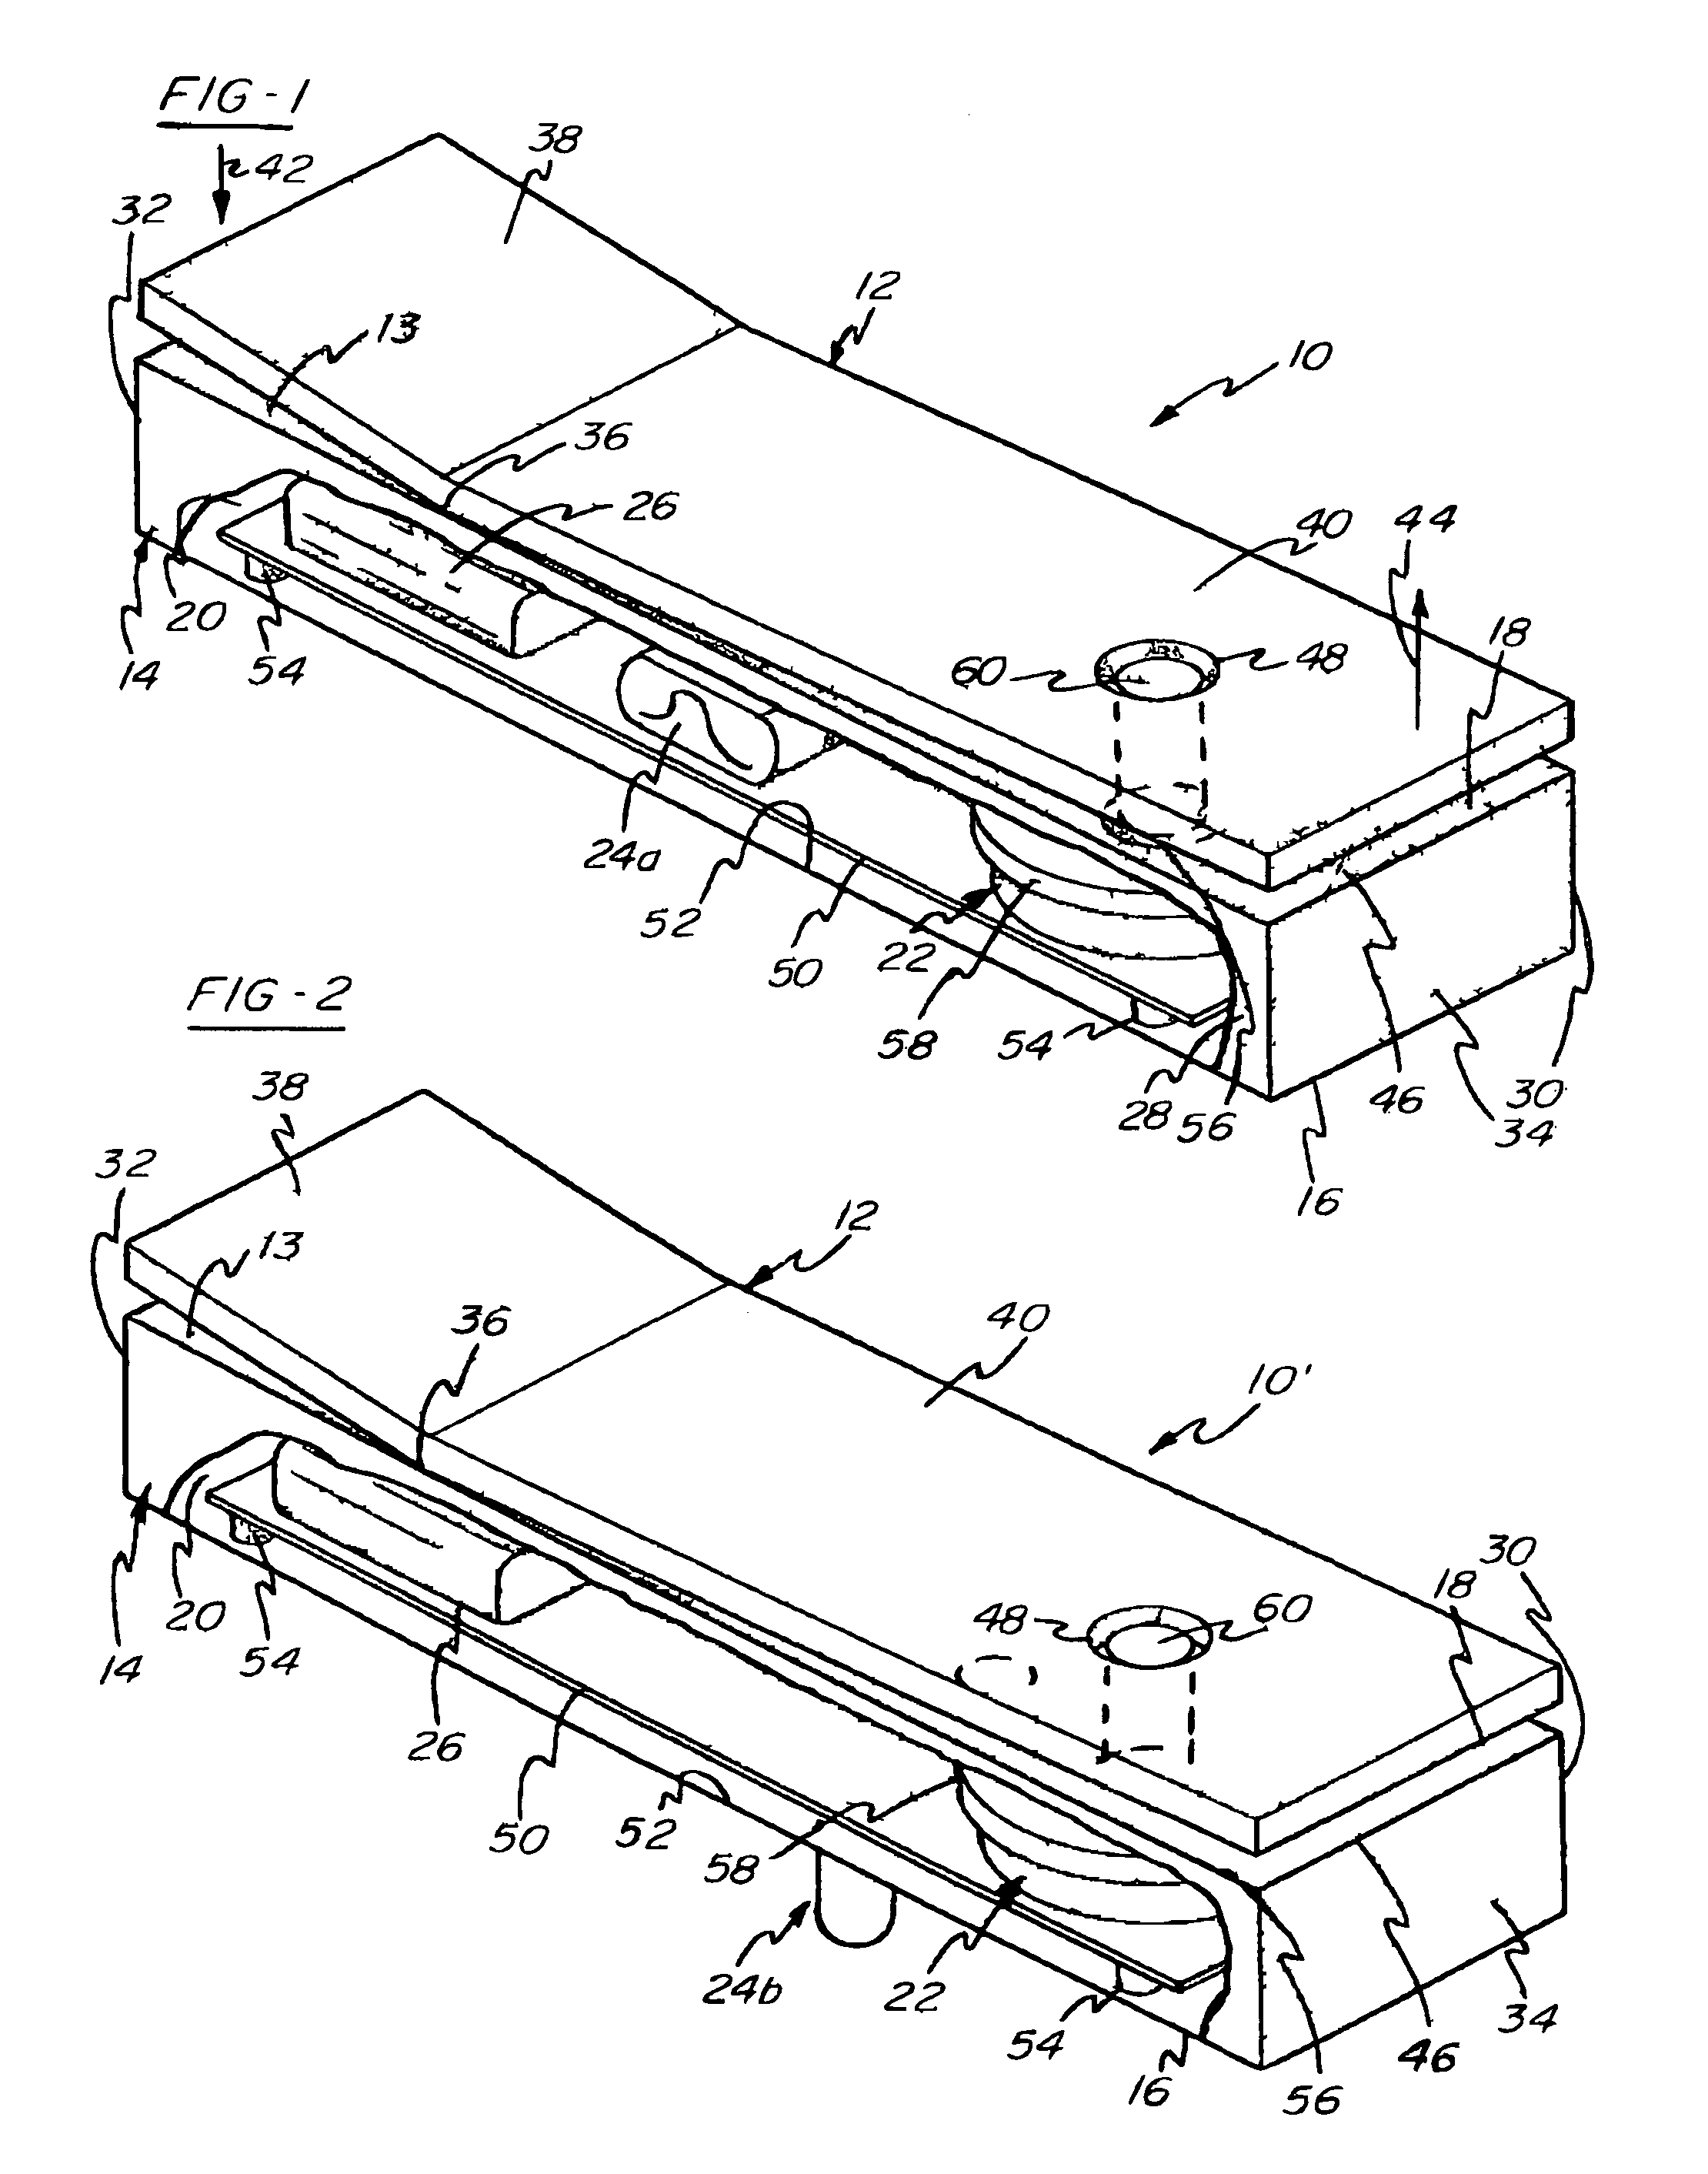 patent us6980111 - medication tracking system